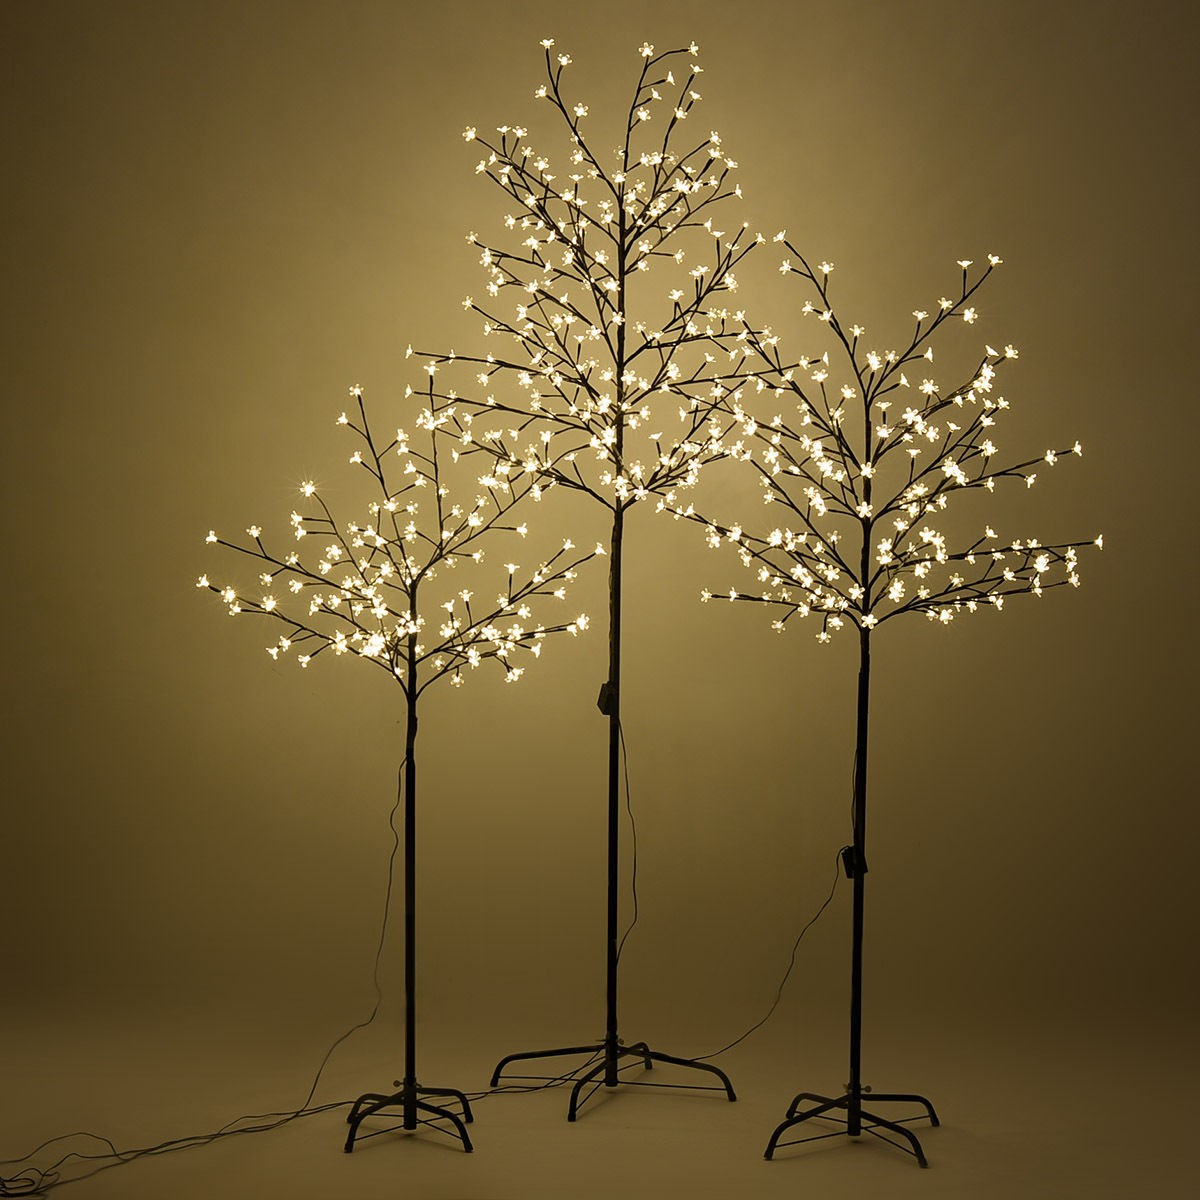 blossom floor unbranded xmas lamp floors us christmas light led itm holiday cherry warm decor easter tree home